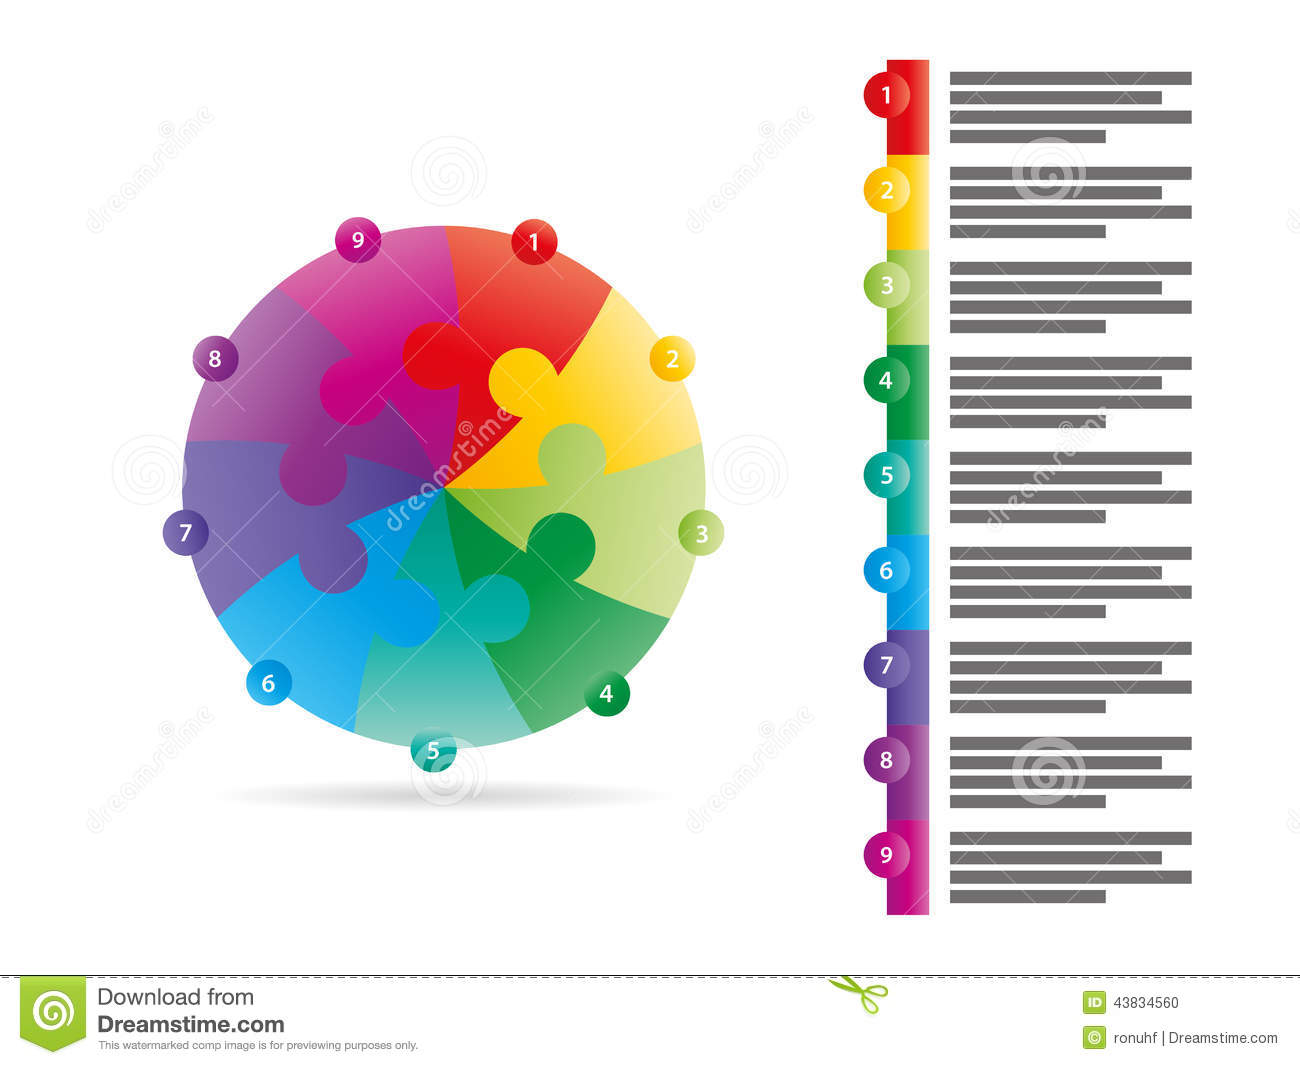 blank diagram template obd2 to obd1 distributor wiring rainbow spectrum colored nine sided arrow puzzle presentation infographic vector graphic ...